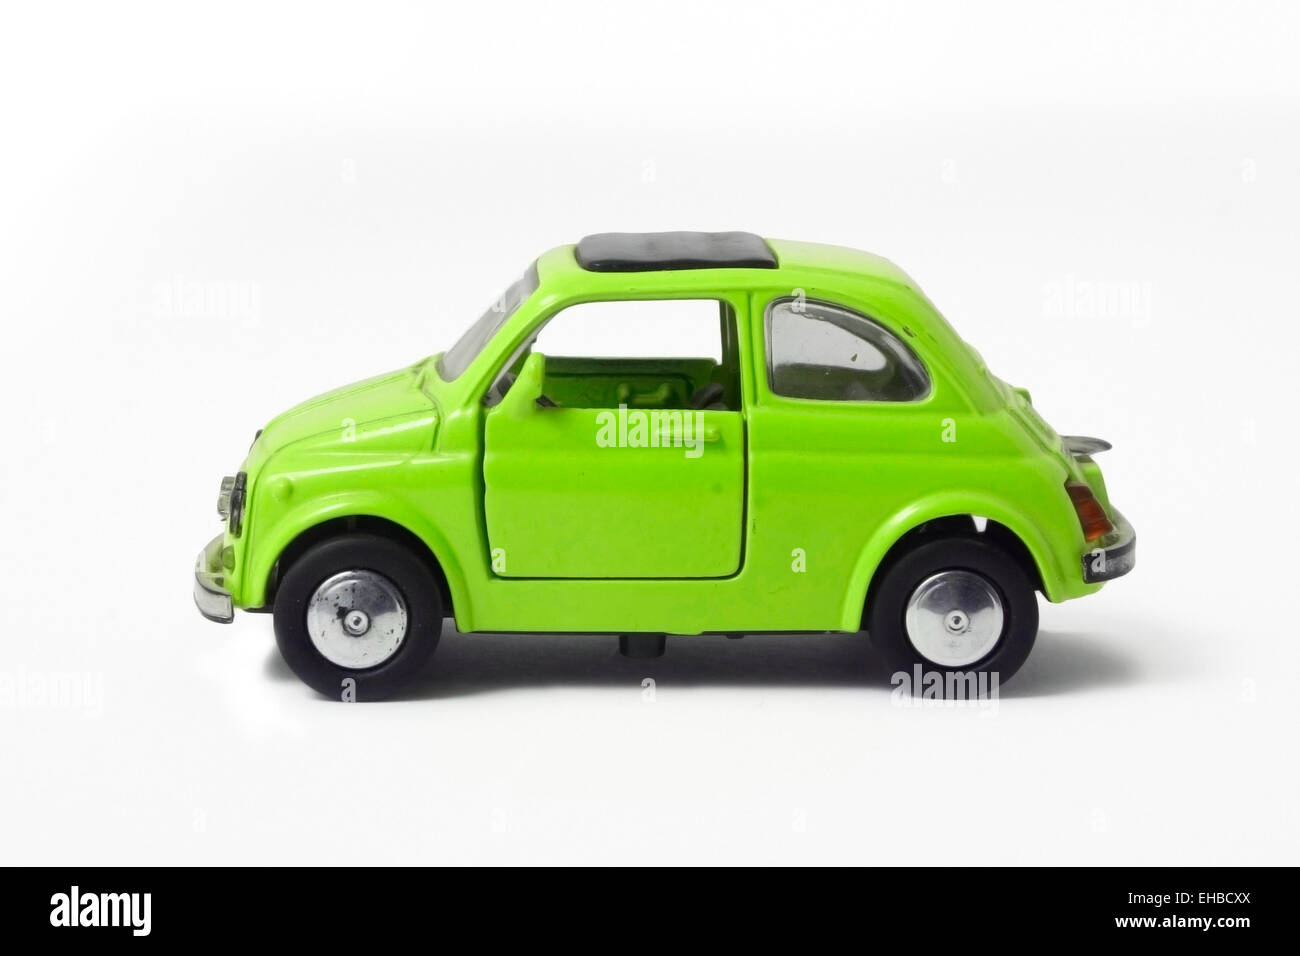 a little model of an old italian car - Stock Image